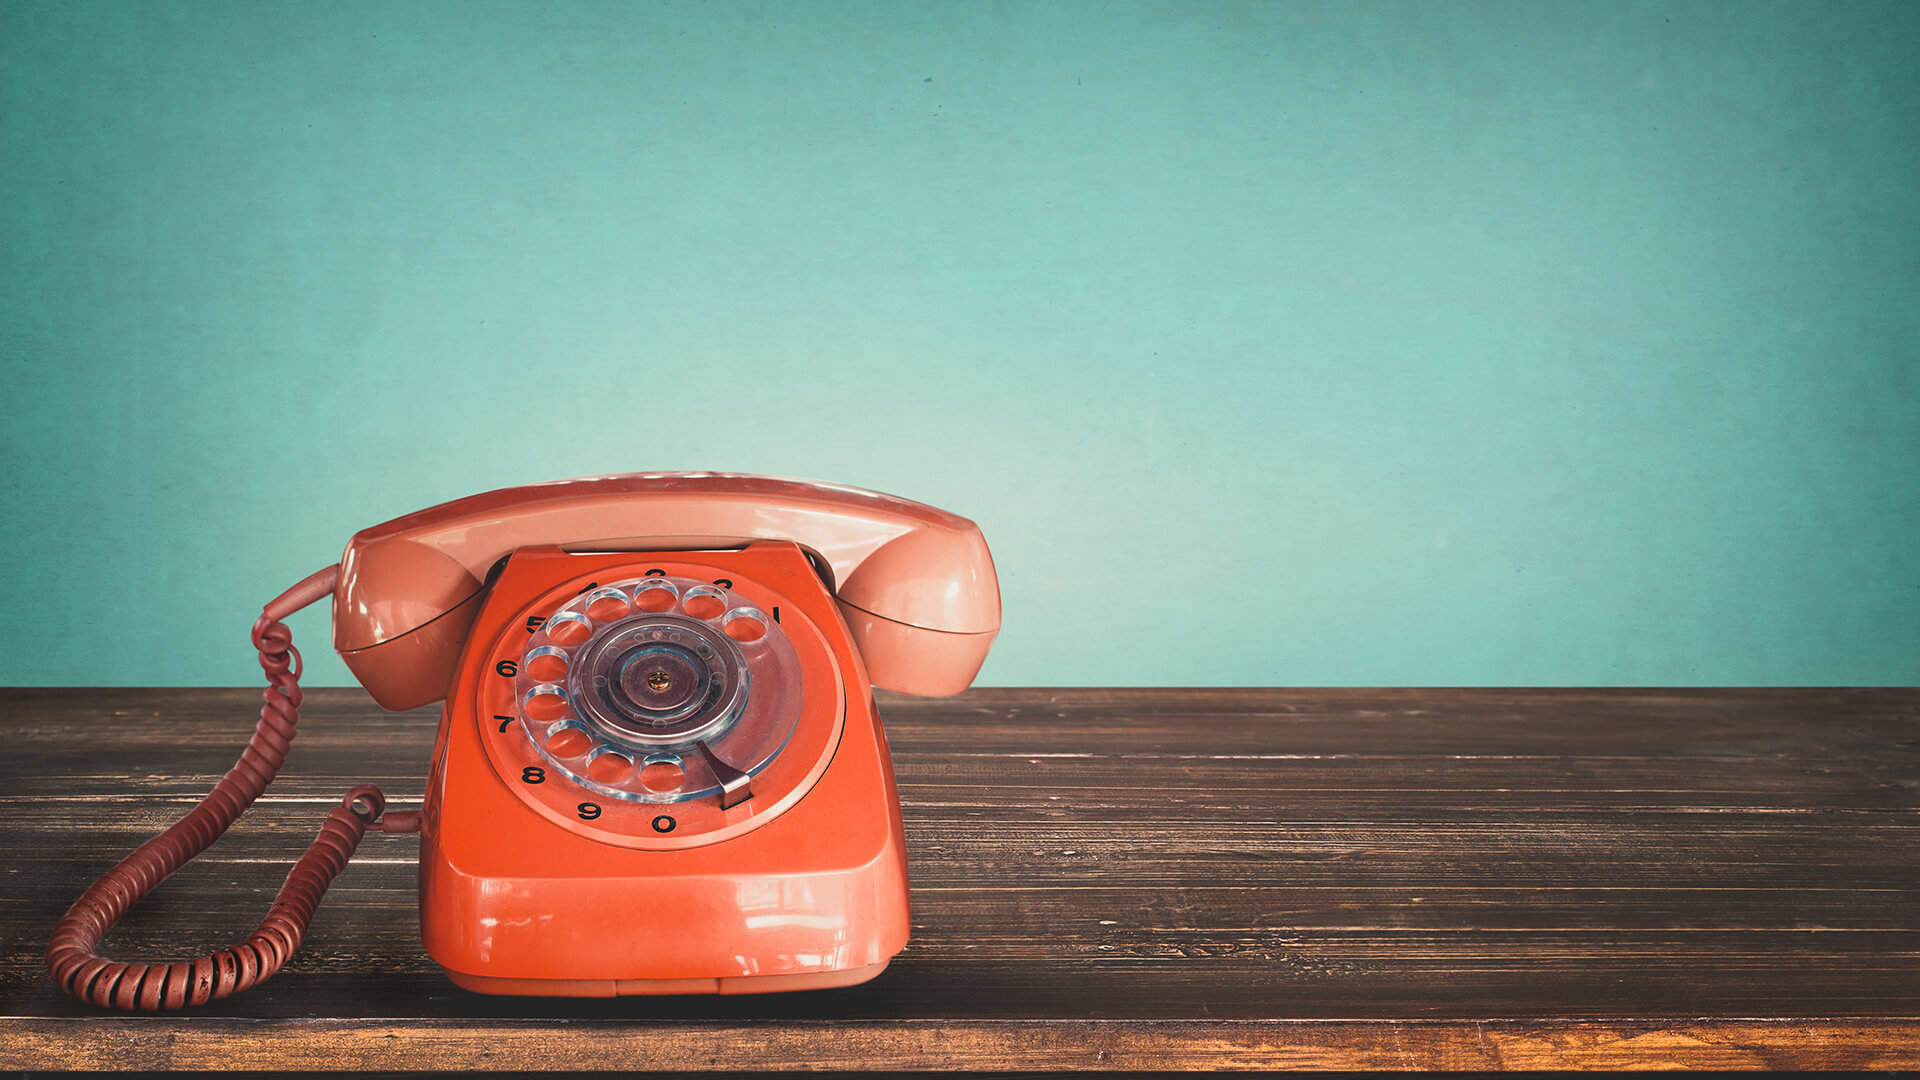 Don't call me: Nearly 90% of customers won't answer the phone anymore [Study]